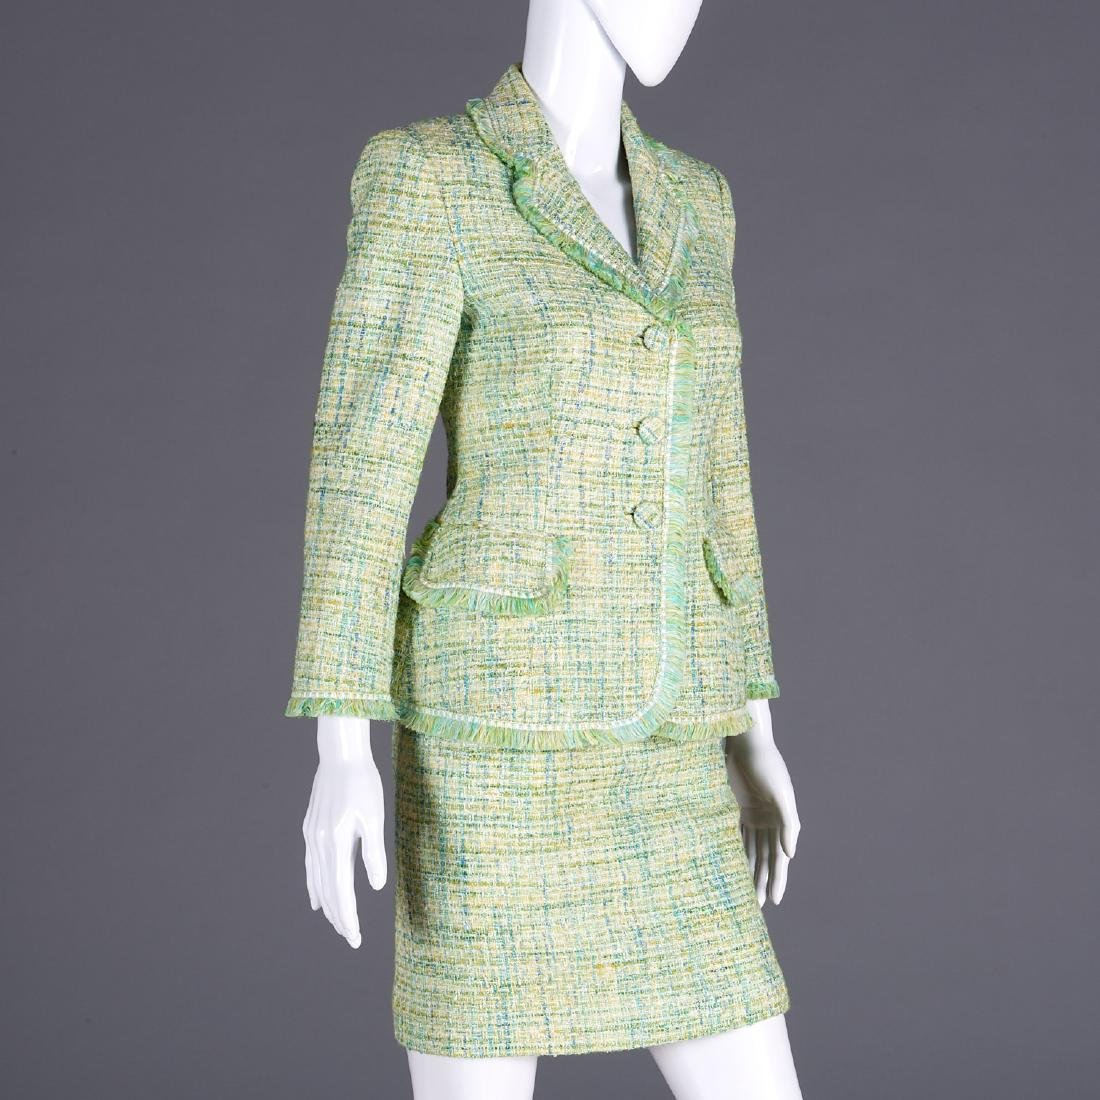 Luisa Beccaria knit skirt suit